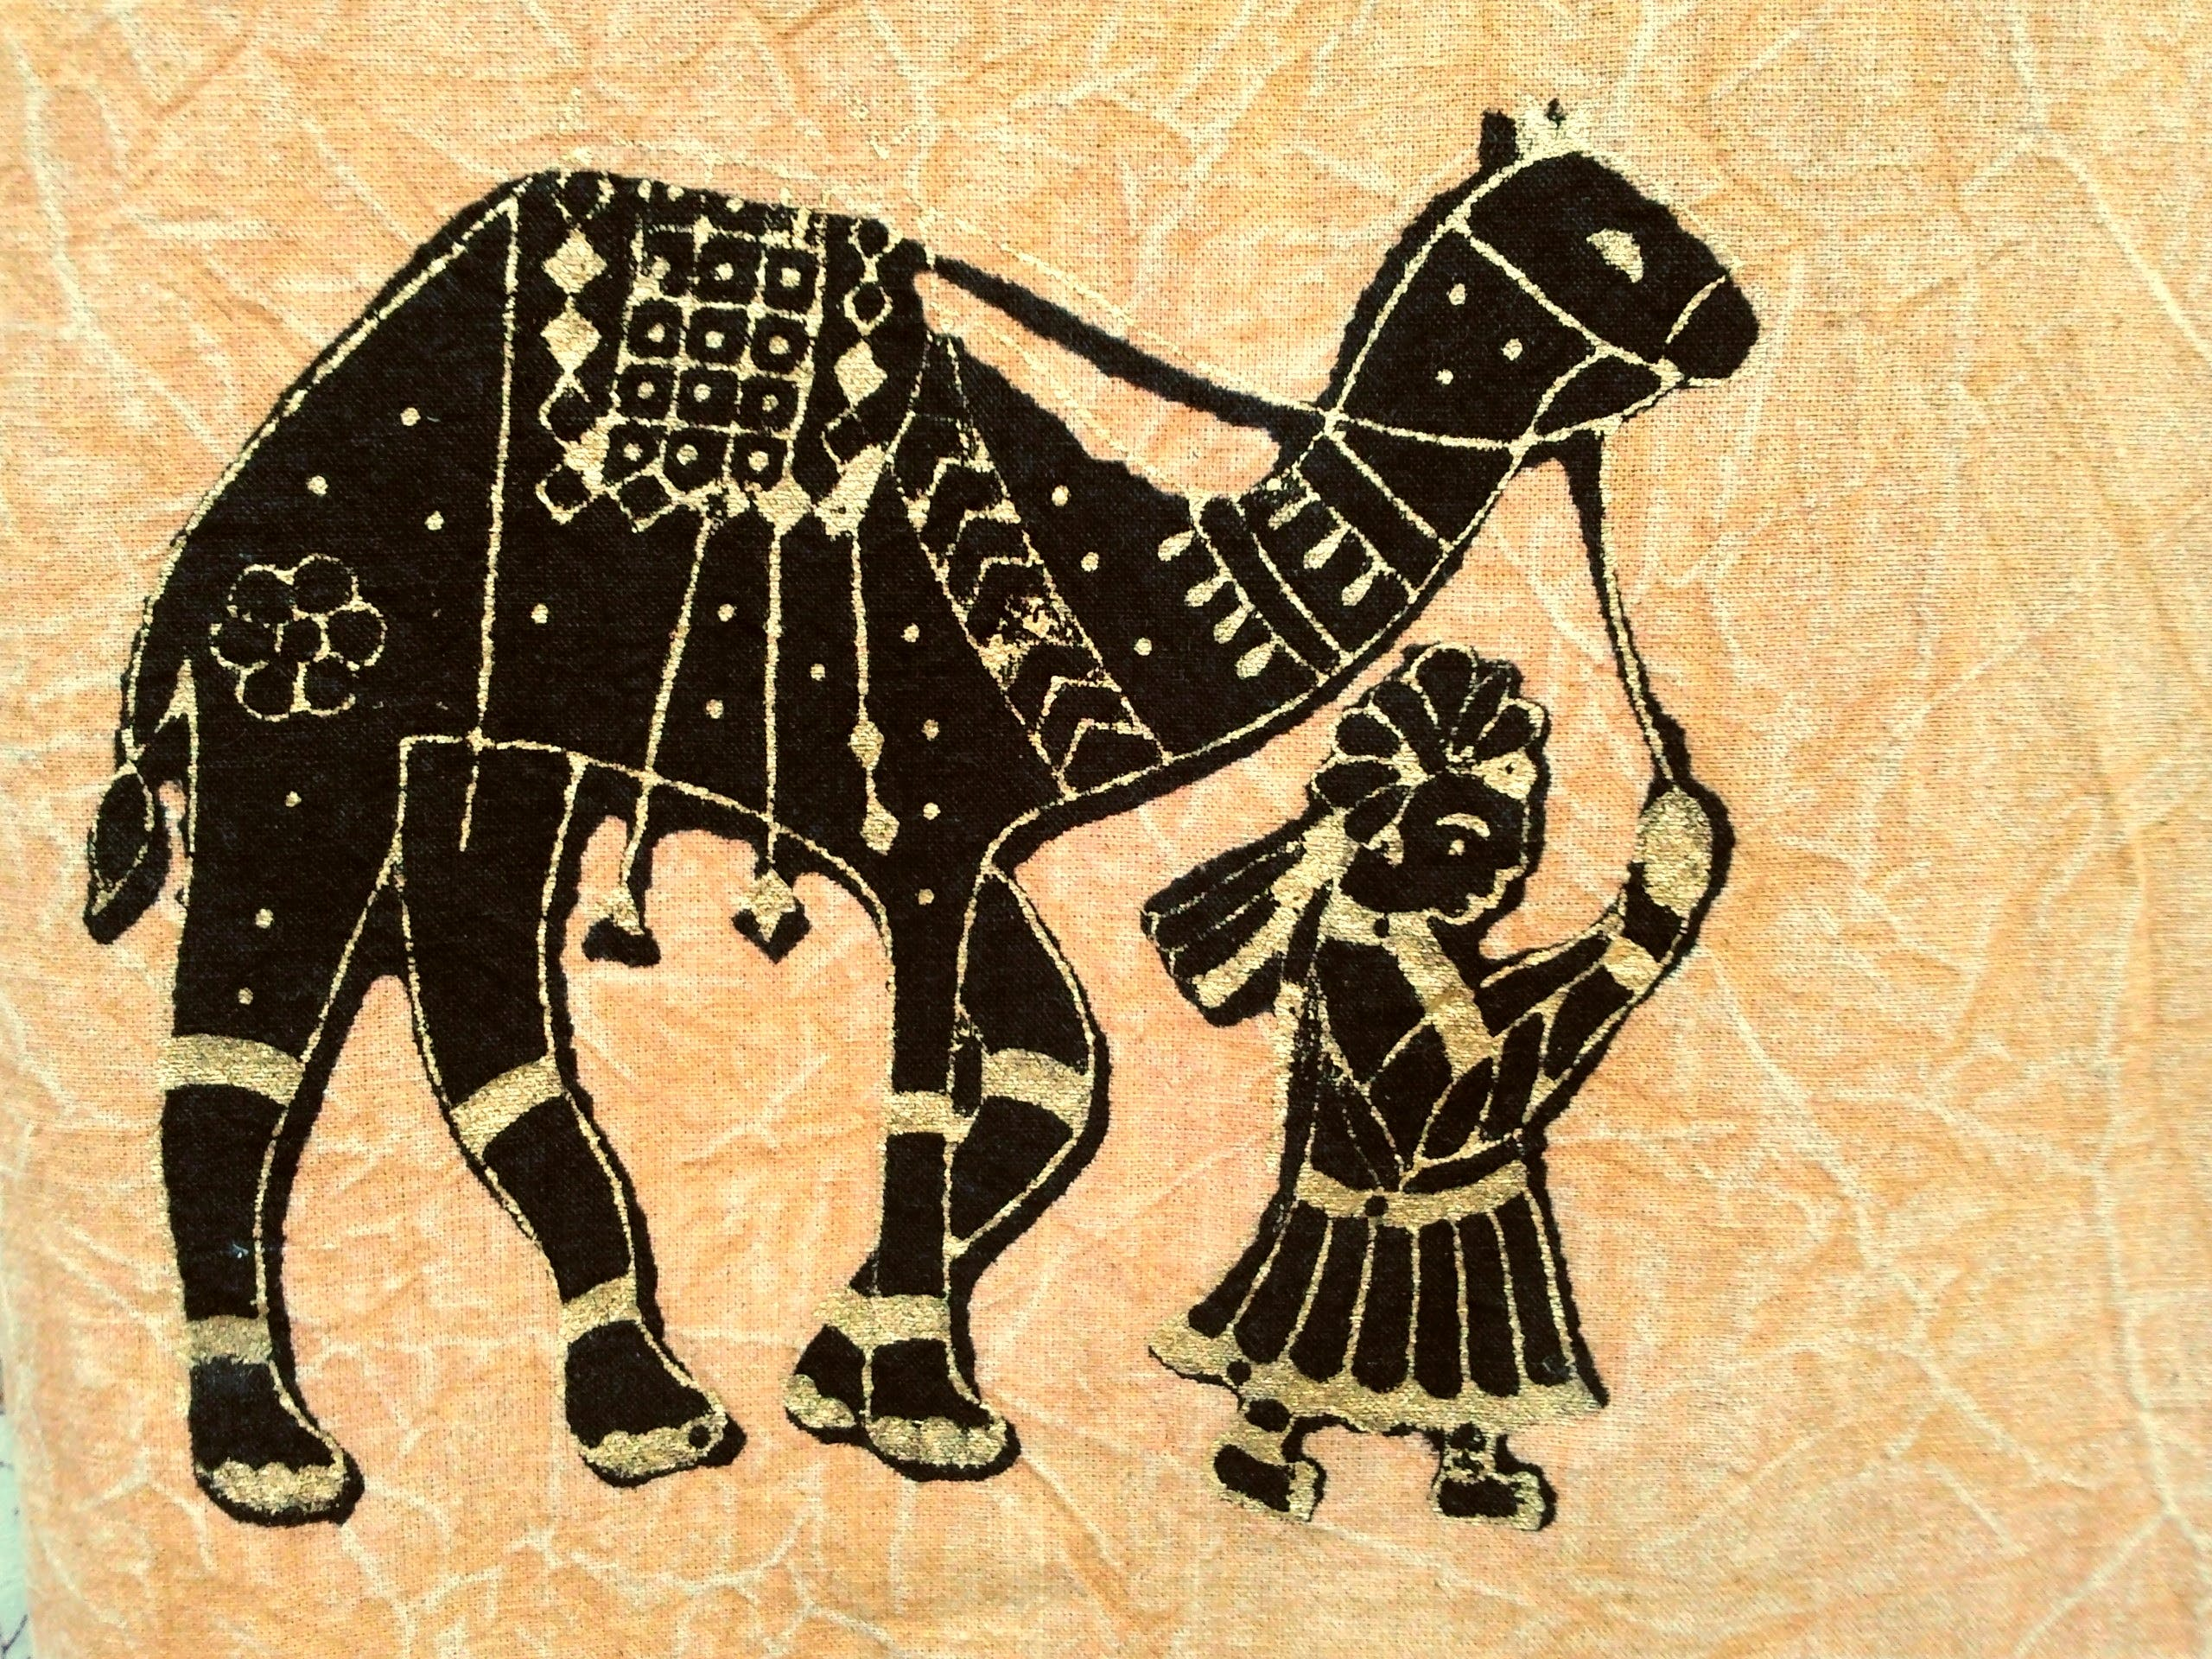 Person Pulling Camel Illustration